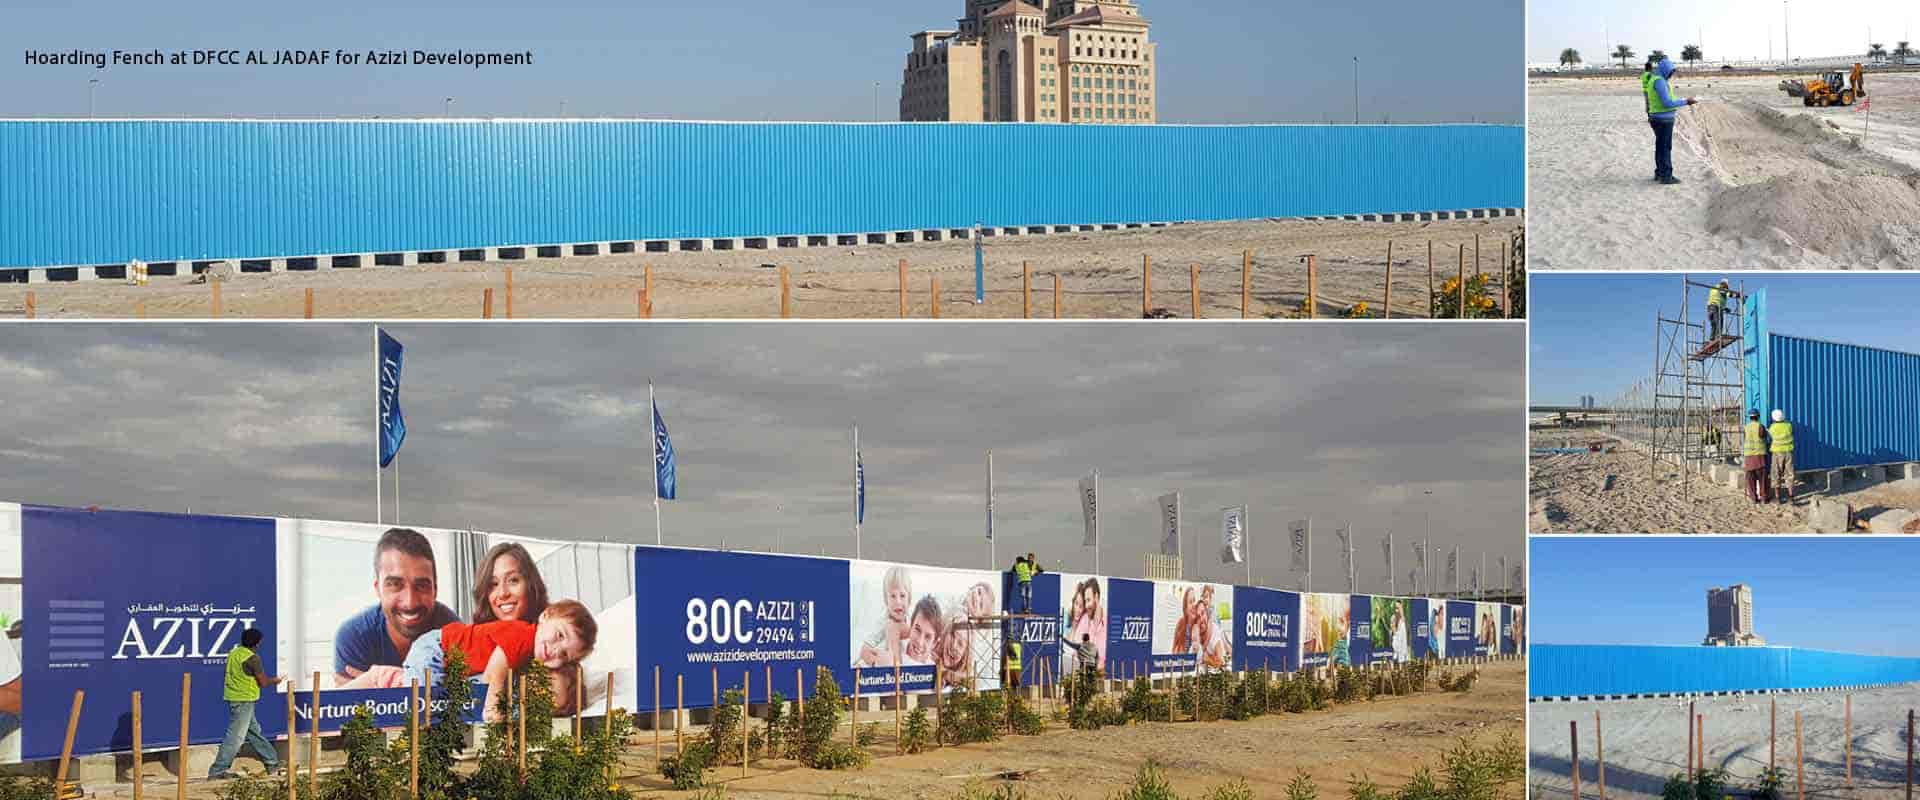 Outdoor Advertising Agents In Sharjah With Contact Details